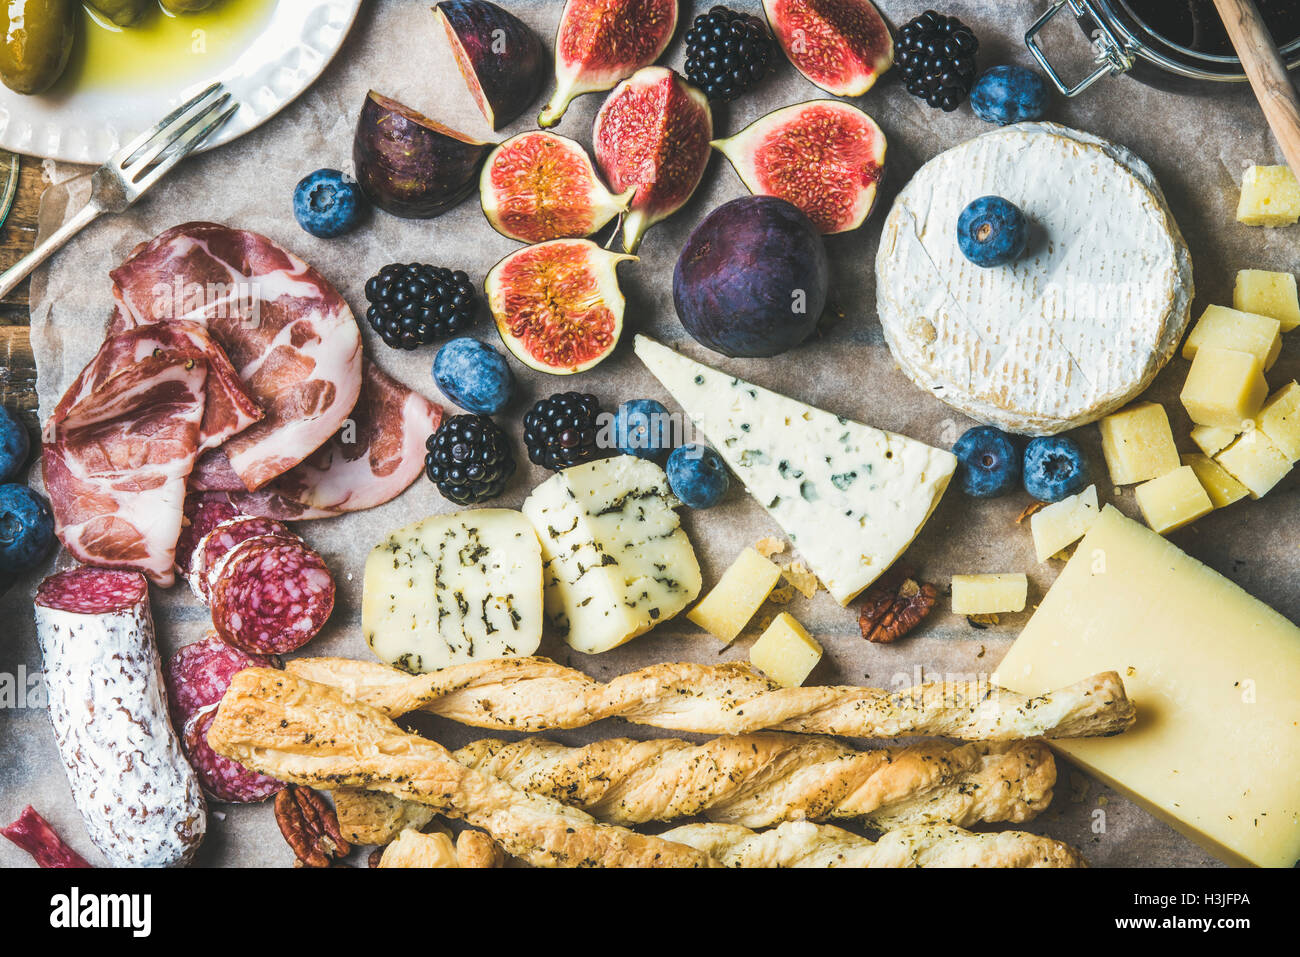 Close-up of wine snack set with meat variety, bread, green olives, figs, nuts and berries on wax paper, top view, - Stock Image